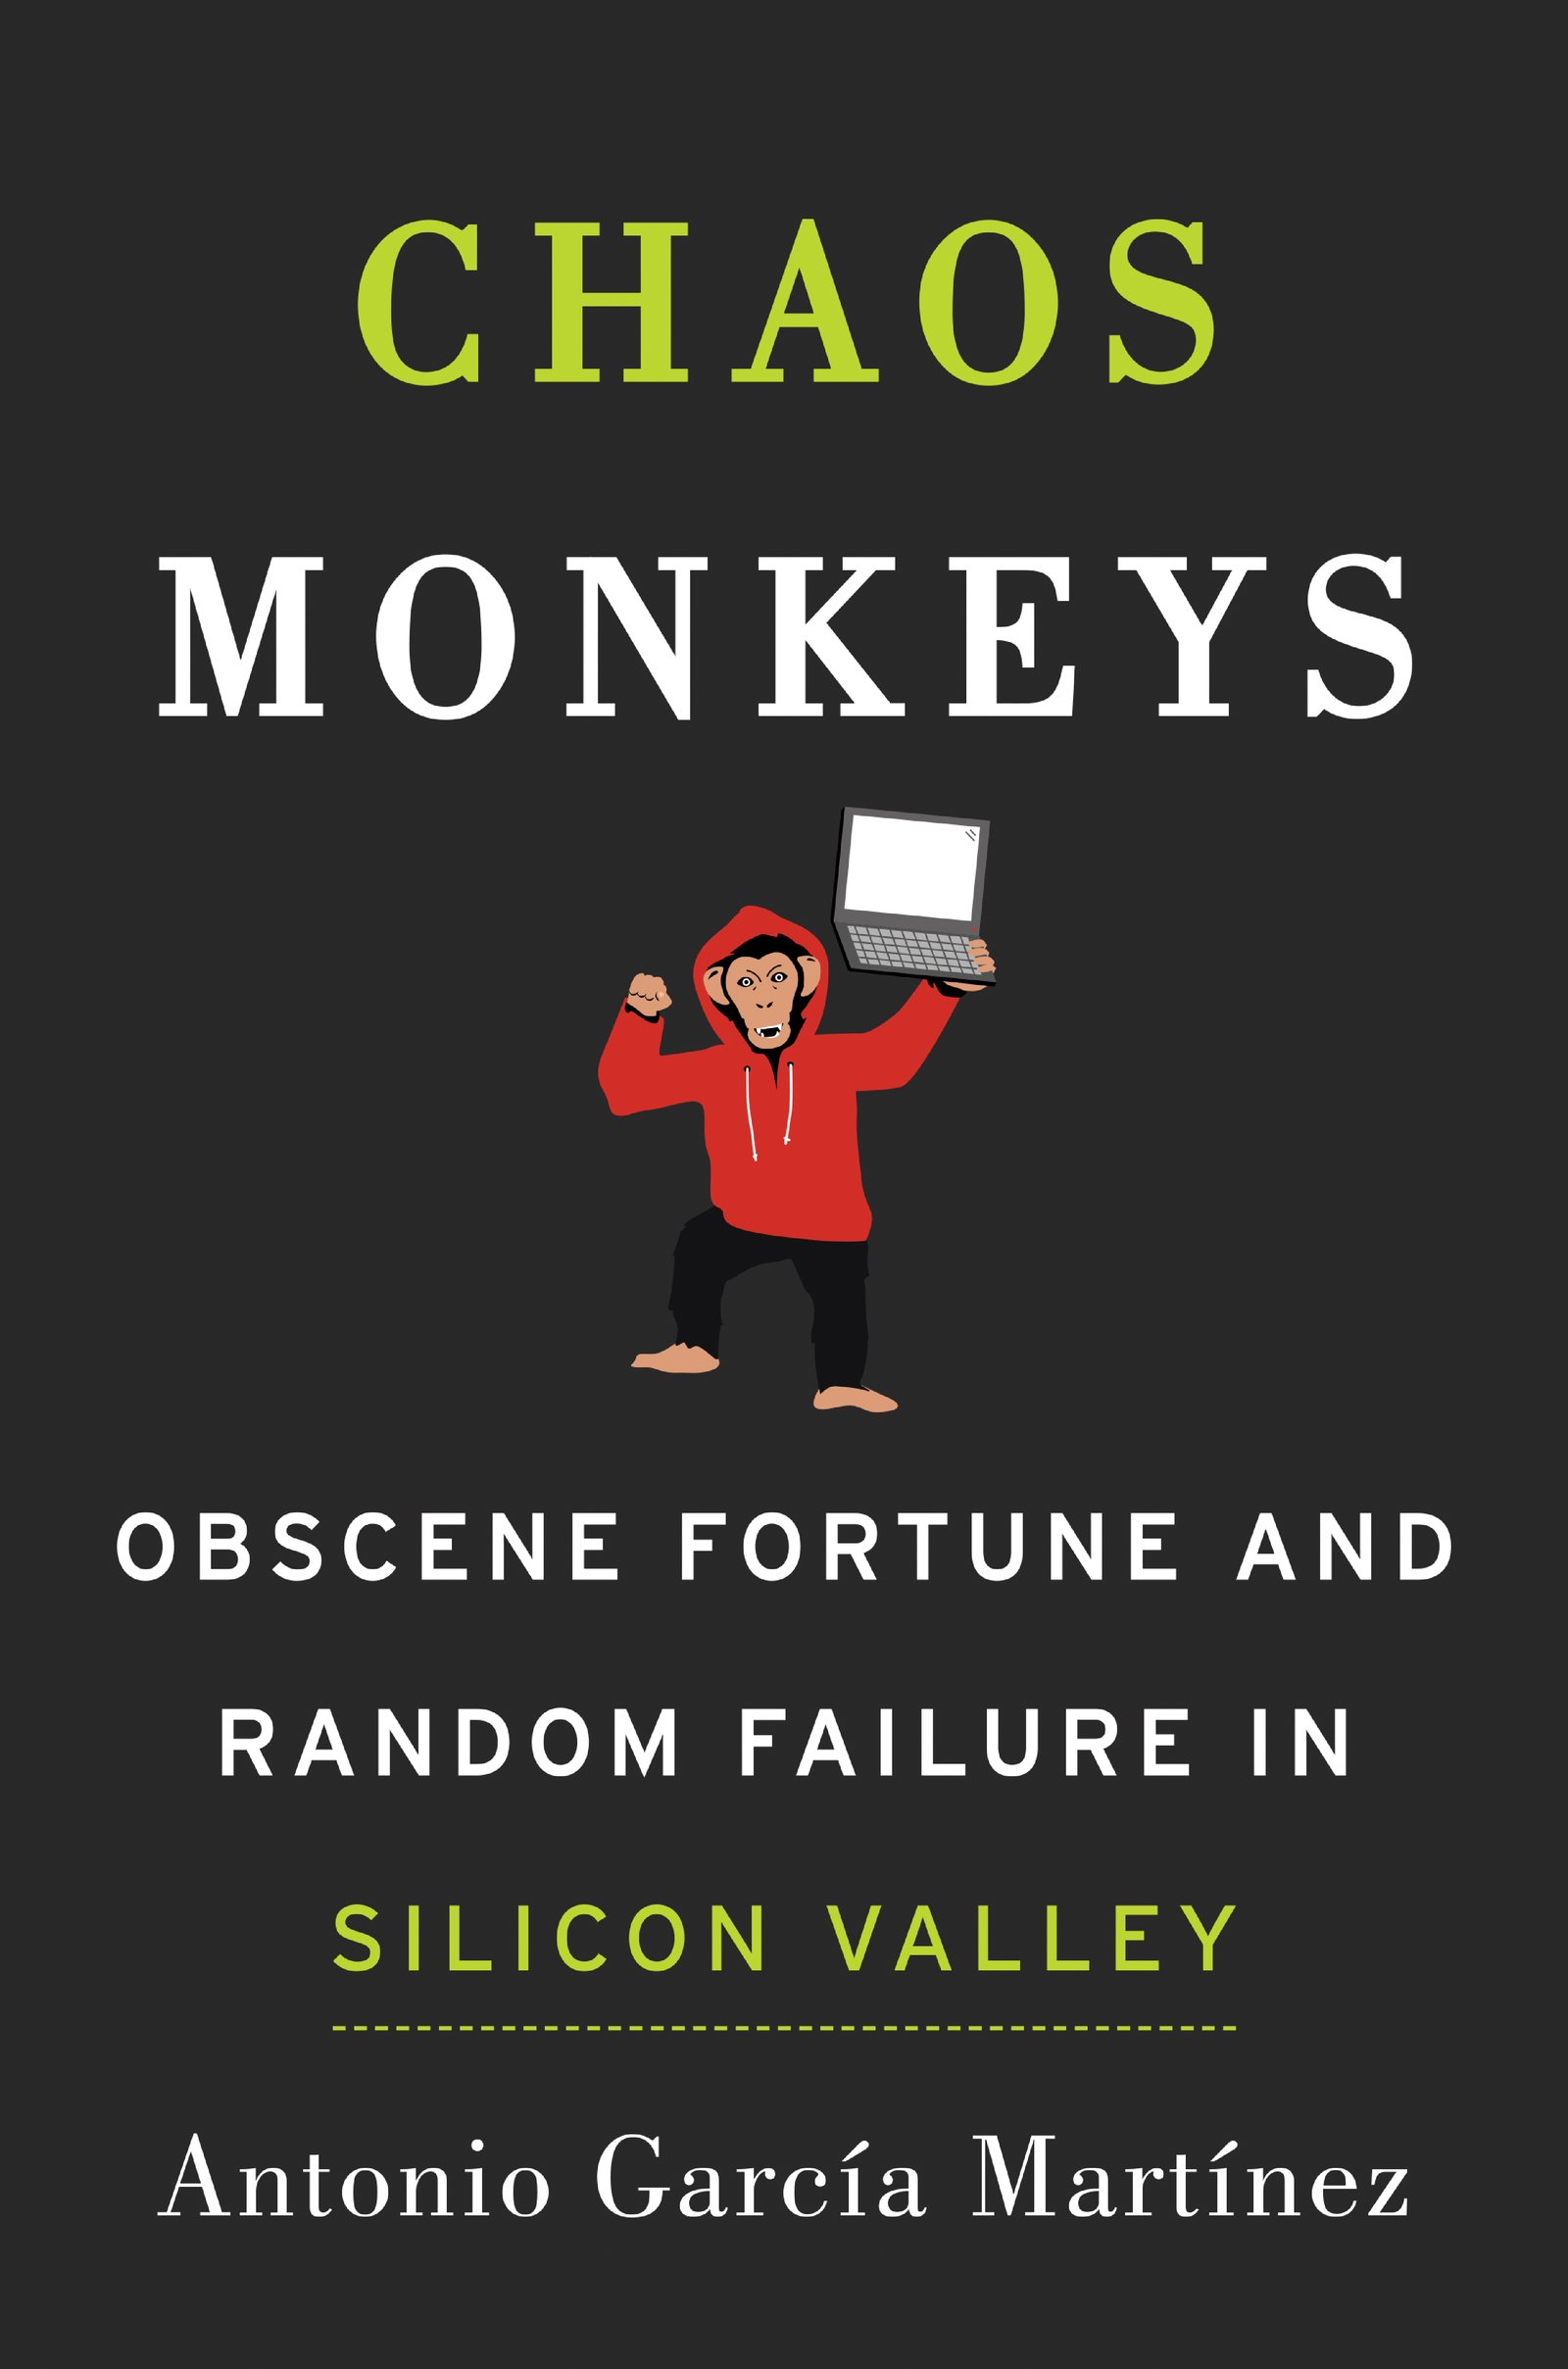 Chaos Monkeys ISBN-13 9780062458193